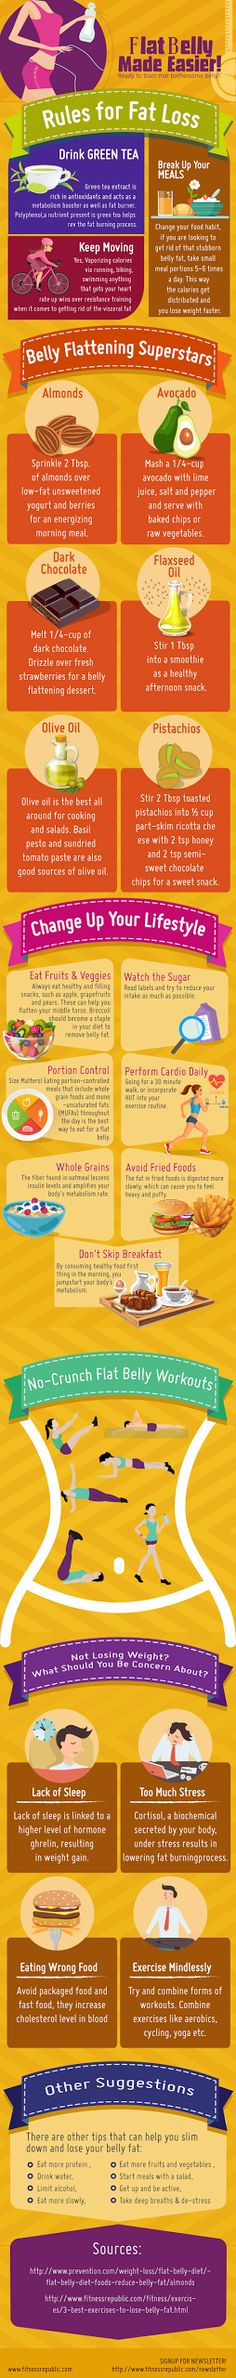 Blast the Belly Fat - Flat Belly Made Easier [Infographic]